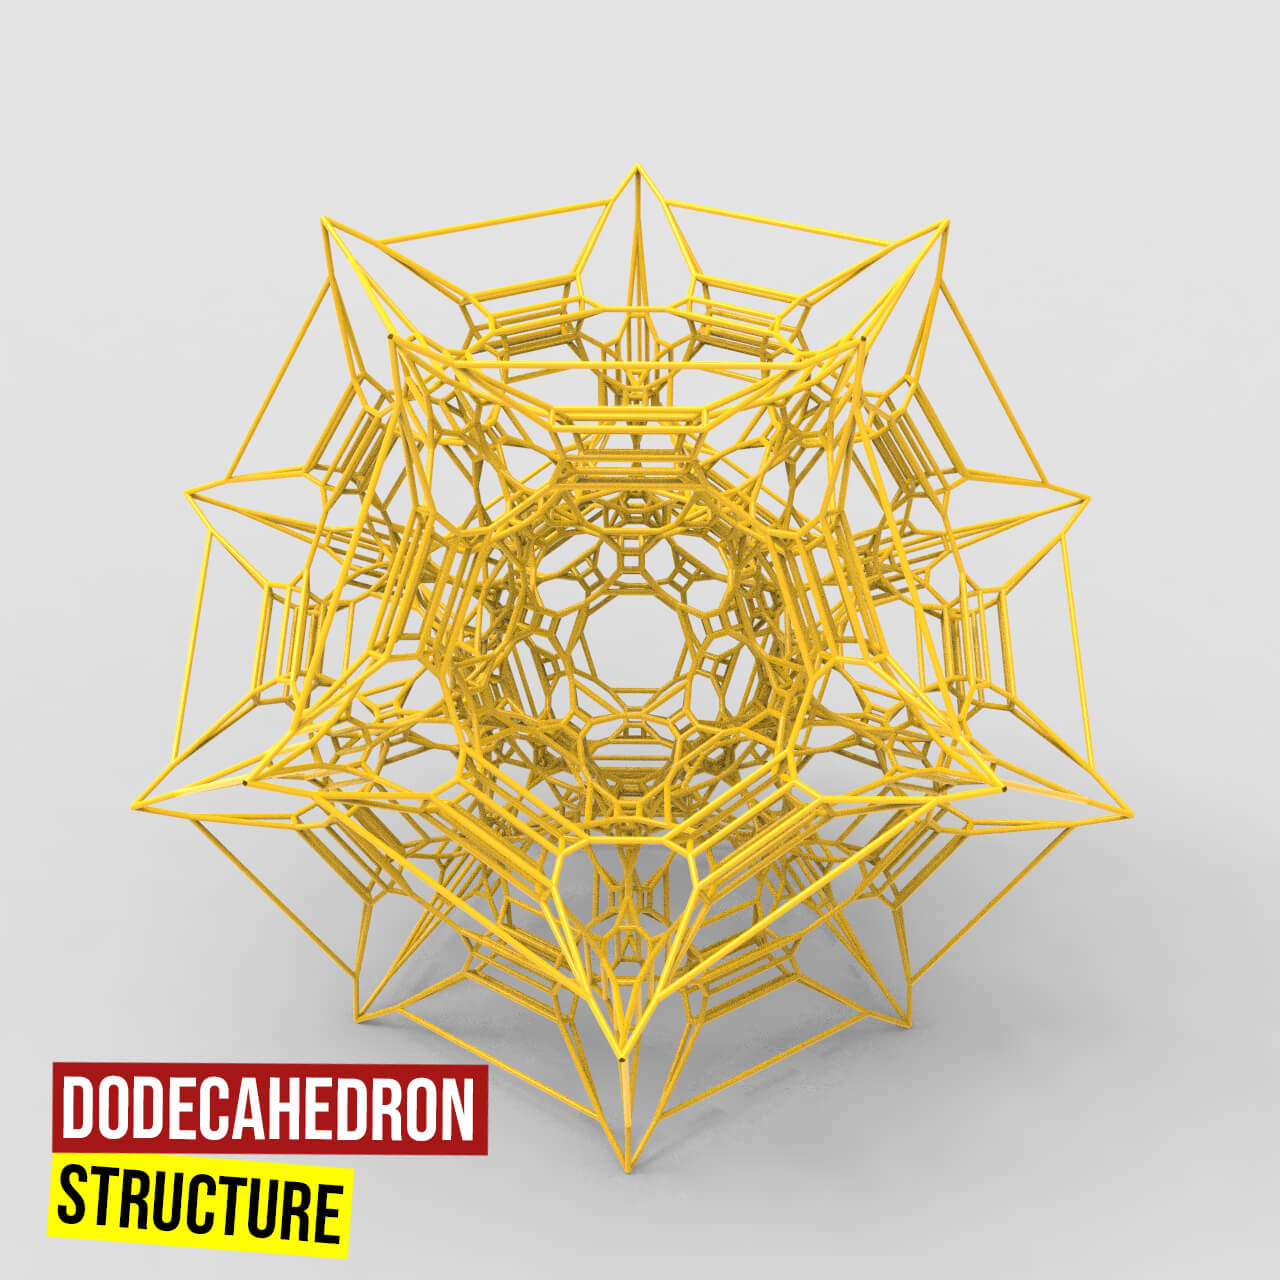 Dodecahedron structure1200